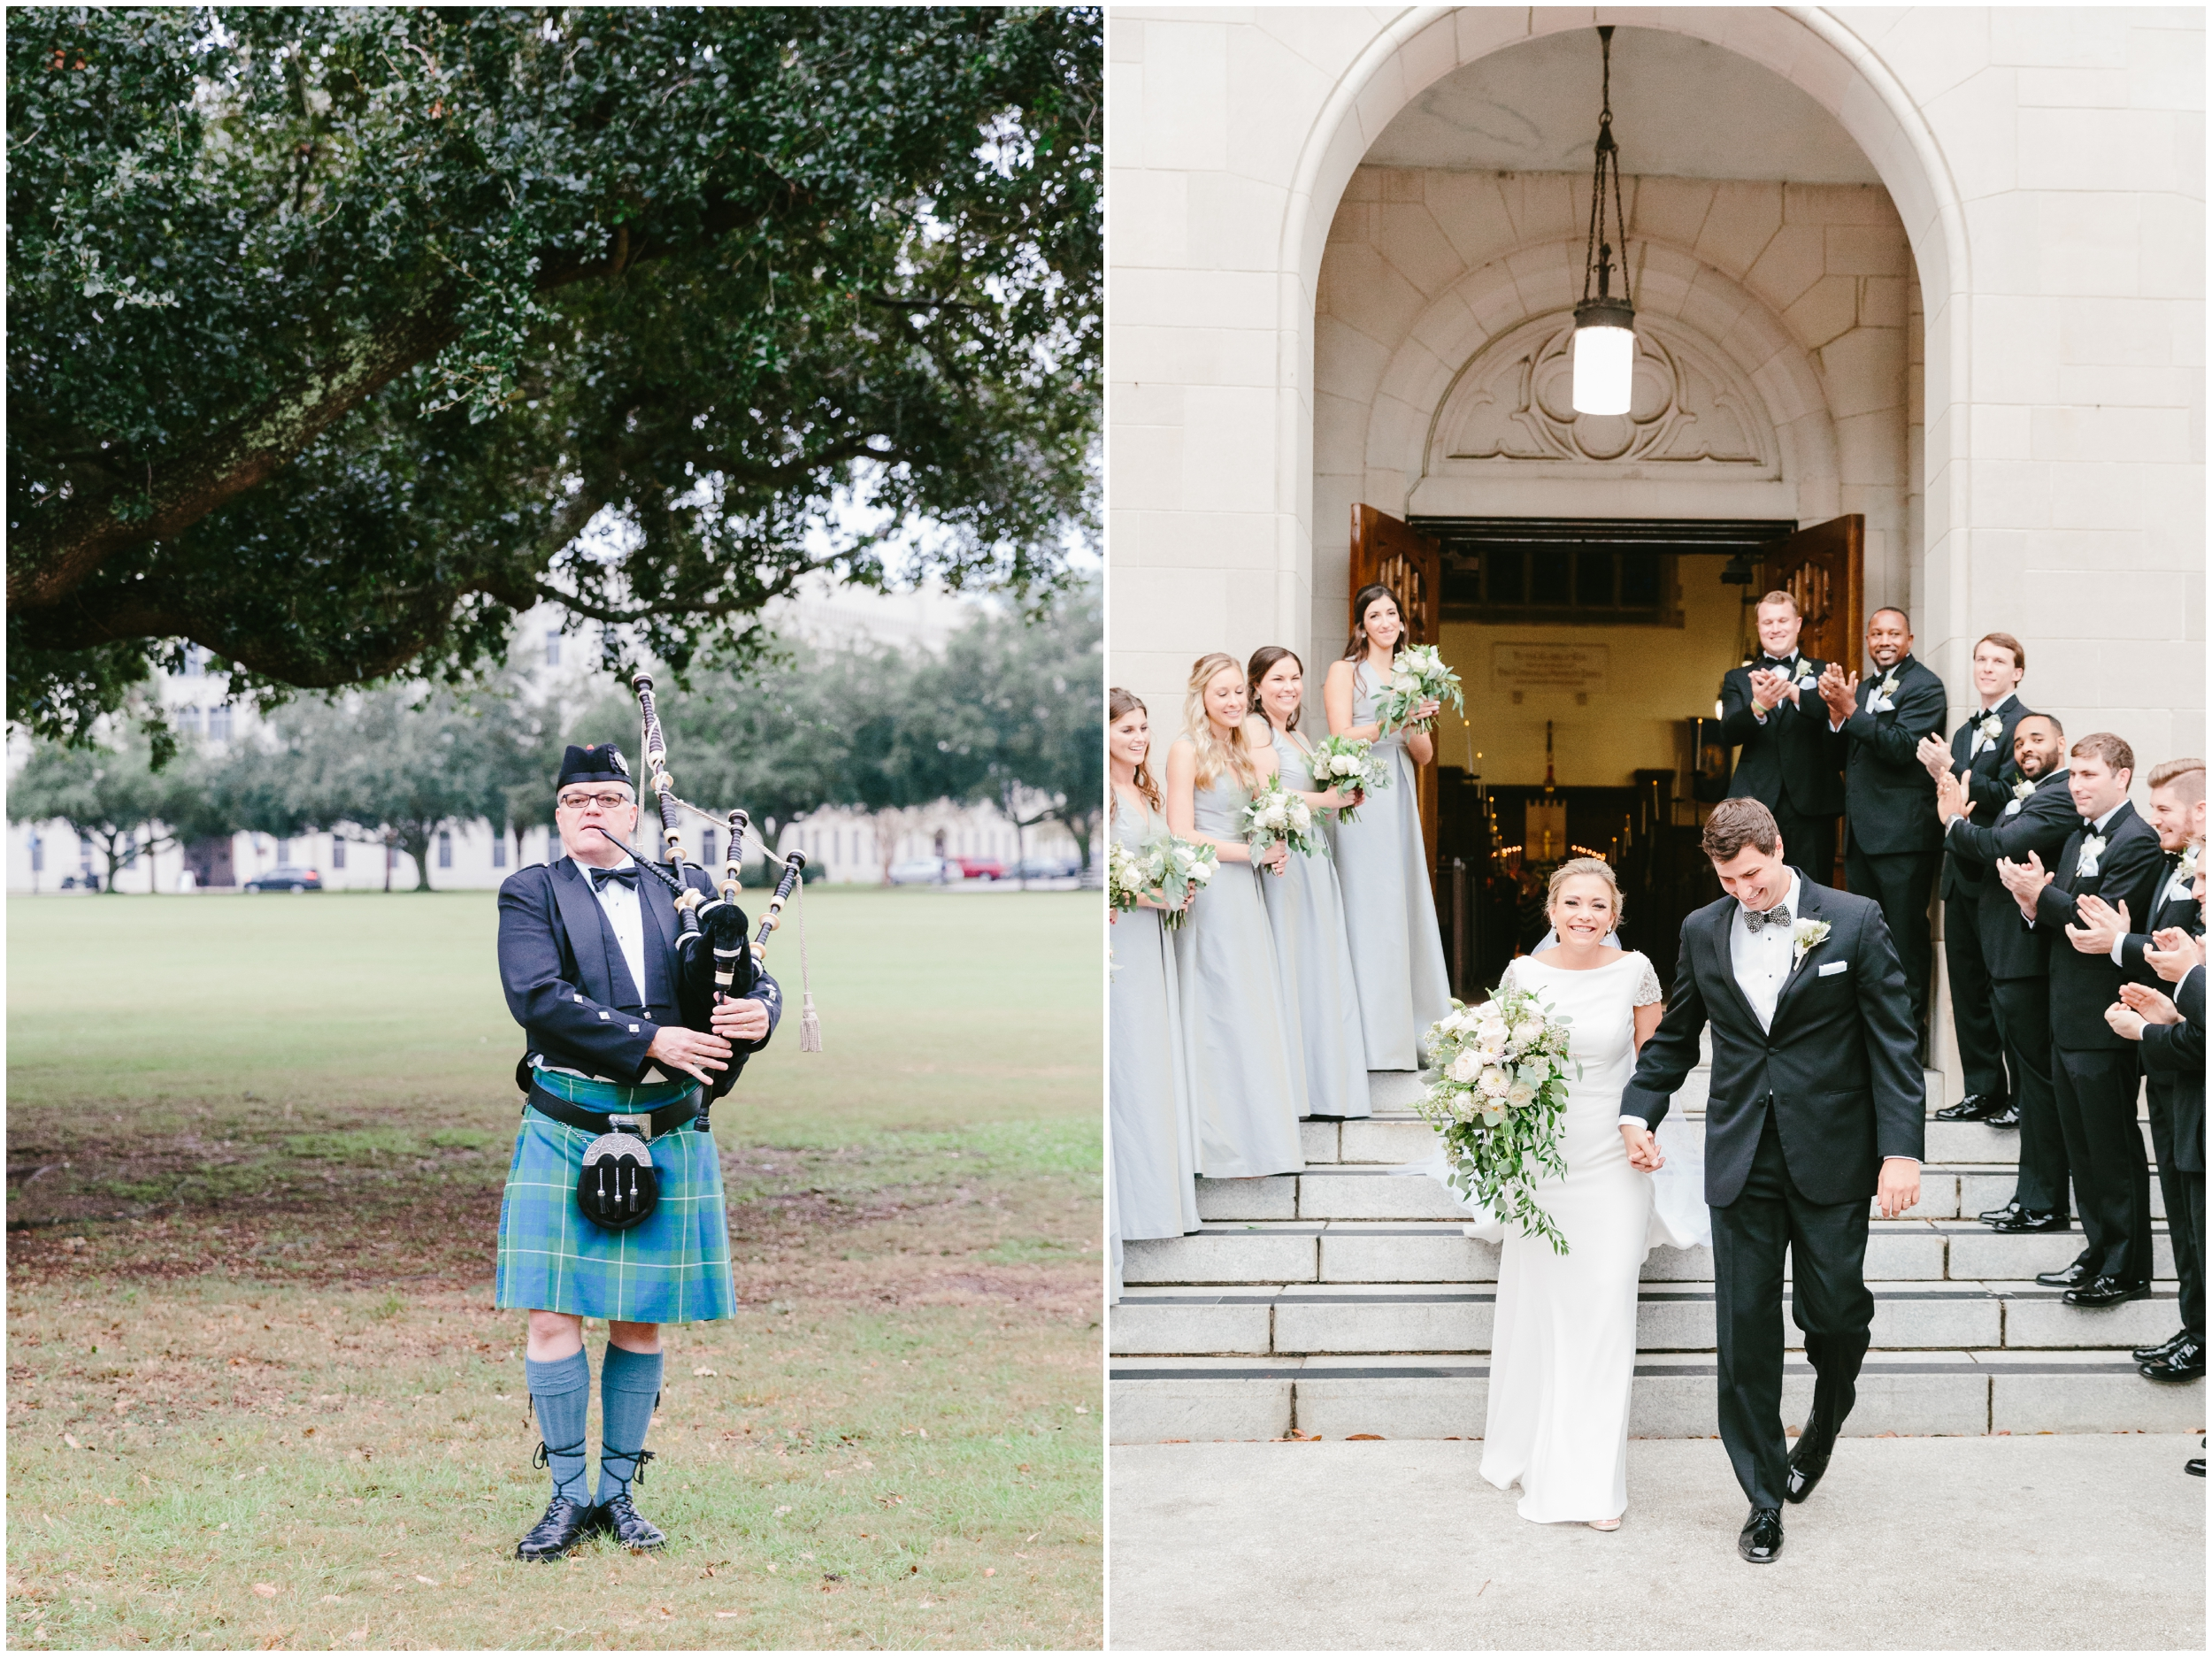 bagpipes play as bride and groom exit the church